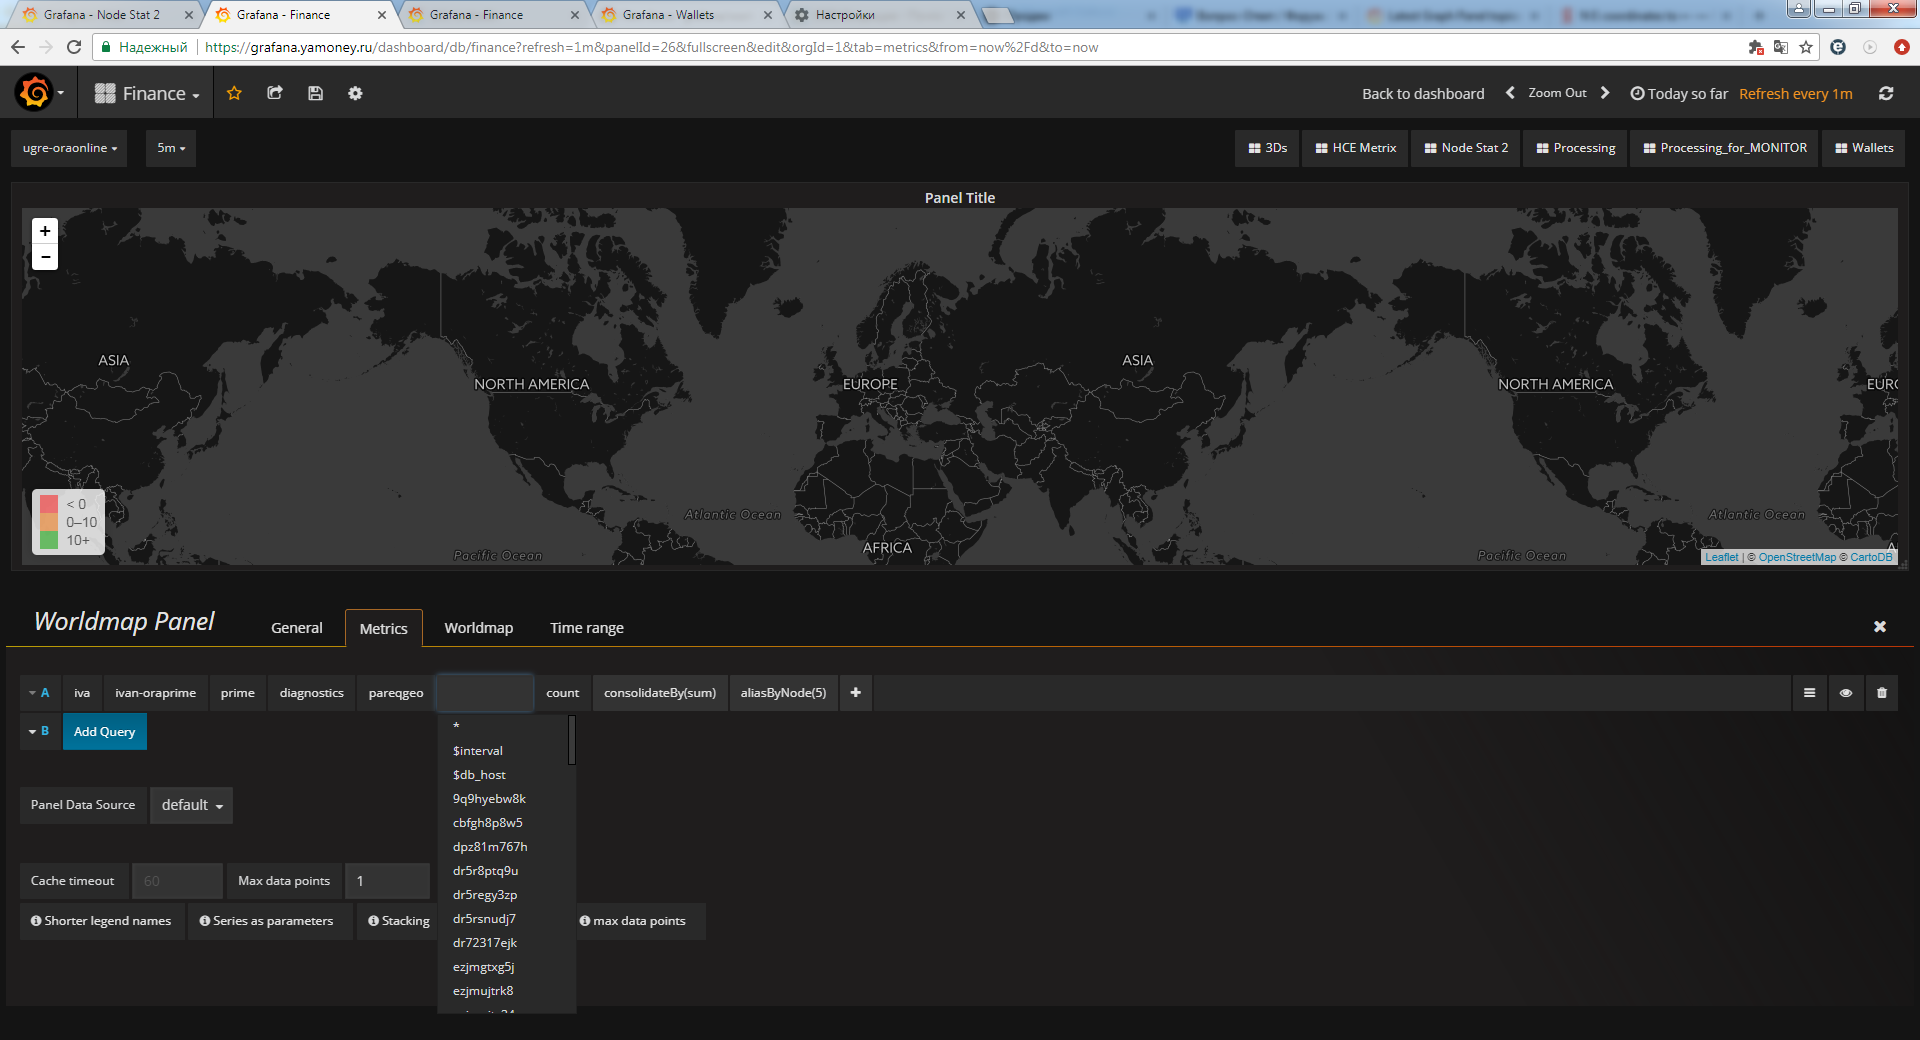 Any chance to display pure geohash on the map? · Issue #89 · grafana